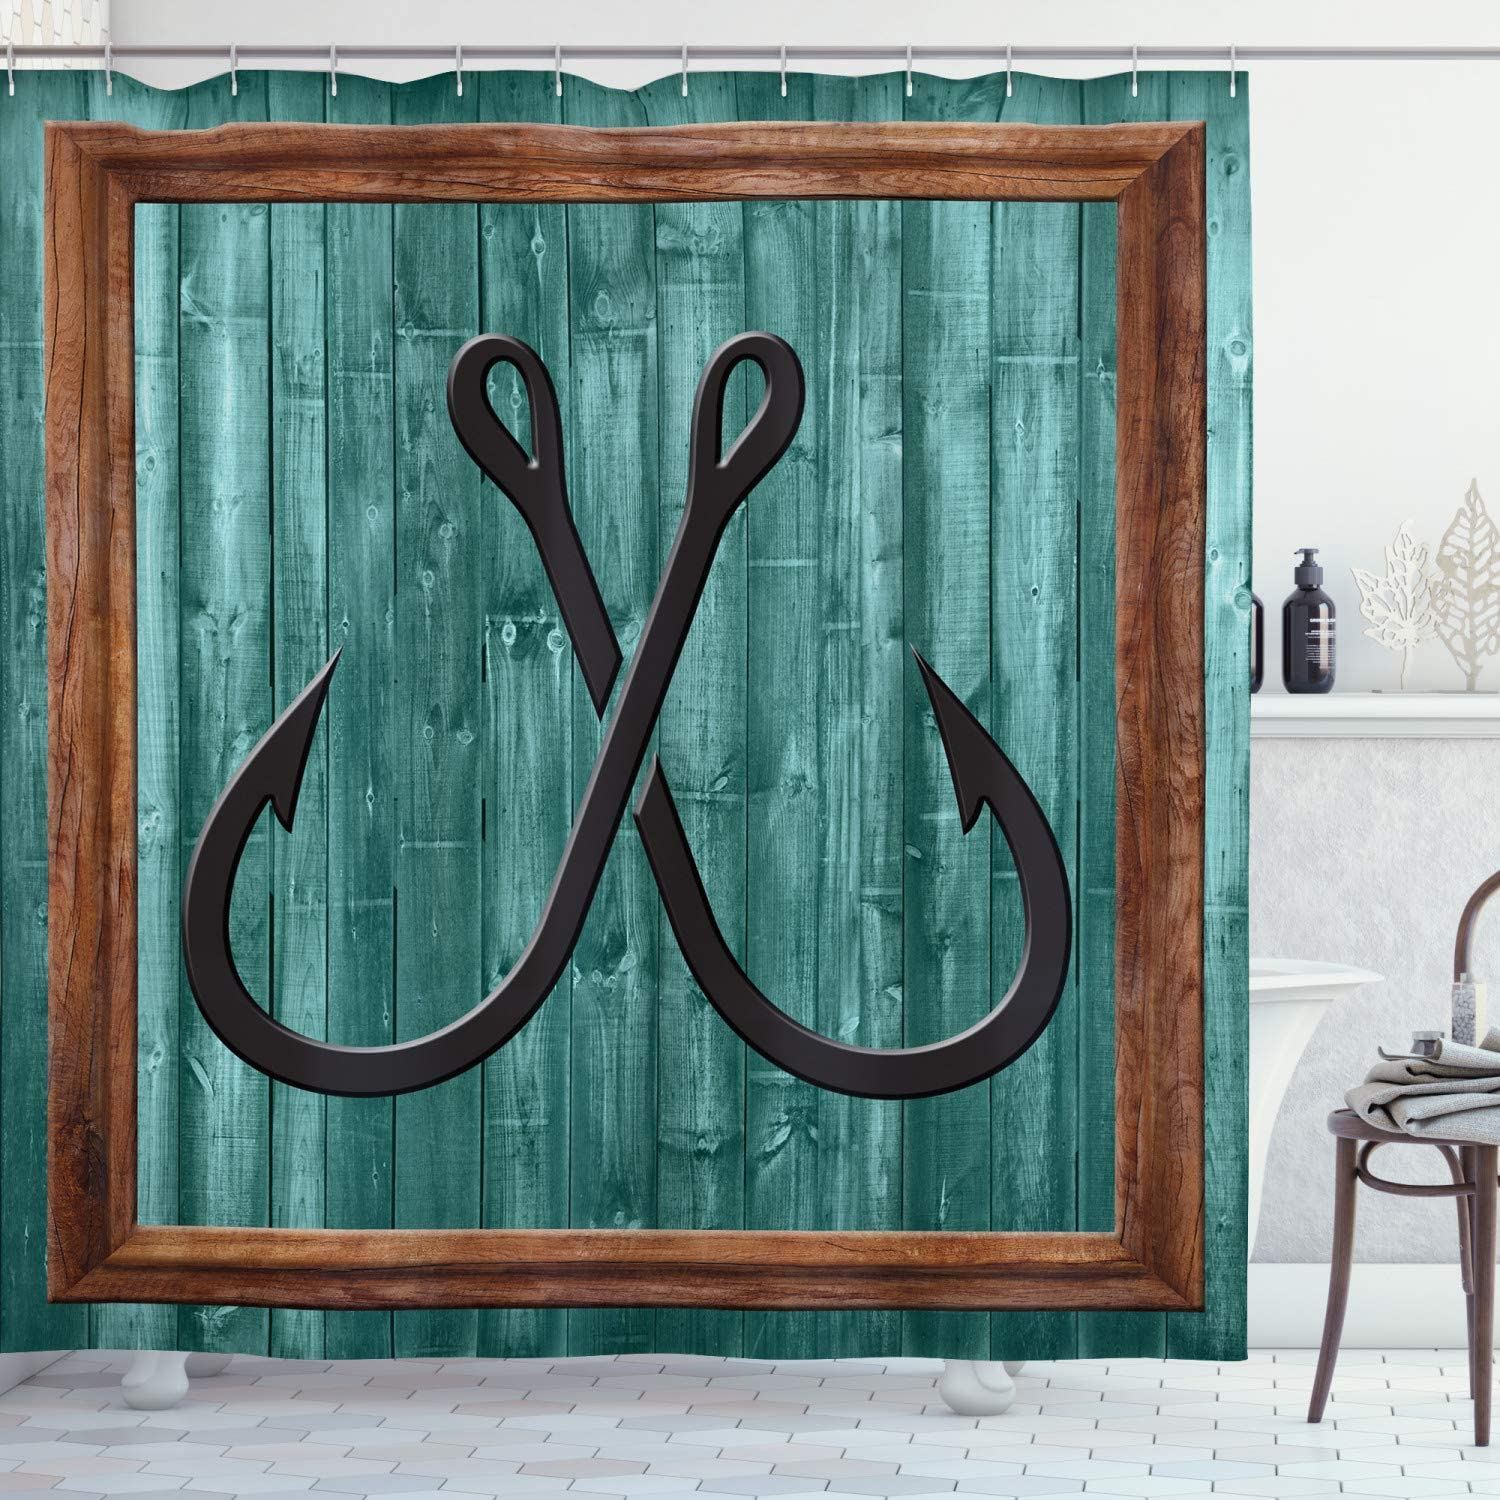 Ambesonne Nautical Shower Curtain, Fishing Lures Anchor Modern Abstract Painting Wooden Frame Rustic, Cloth Fabric Bathroom Decor Set with Hooks, 70